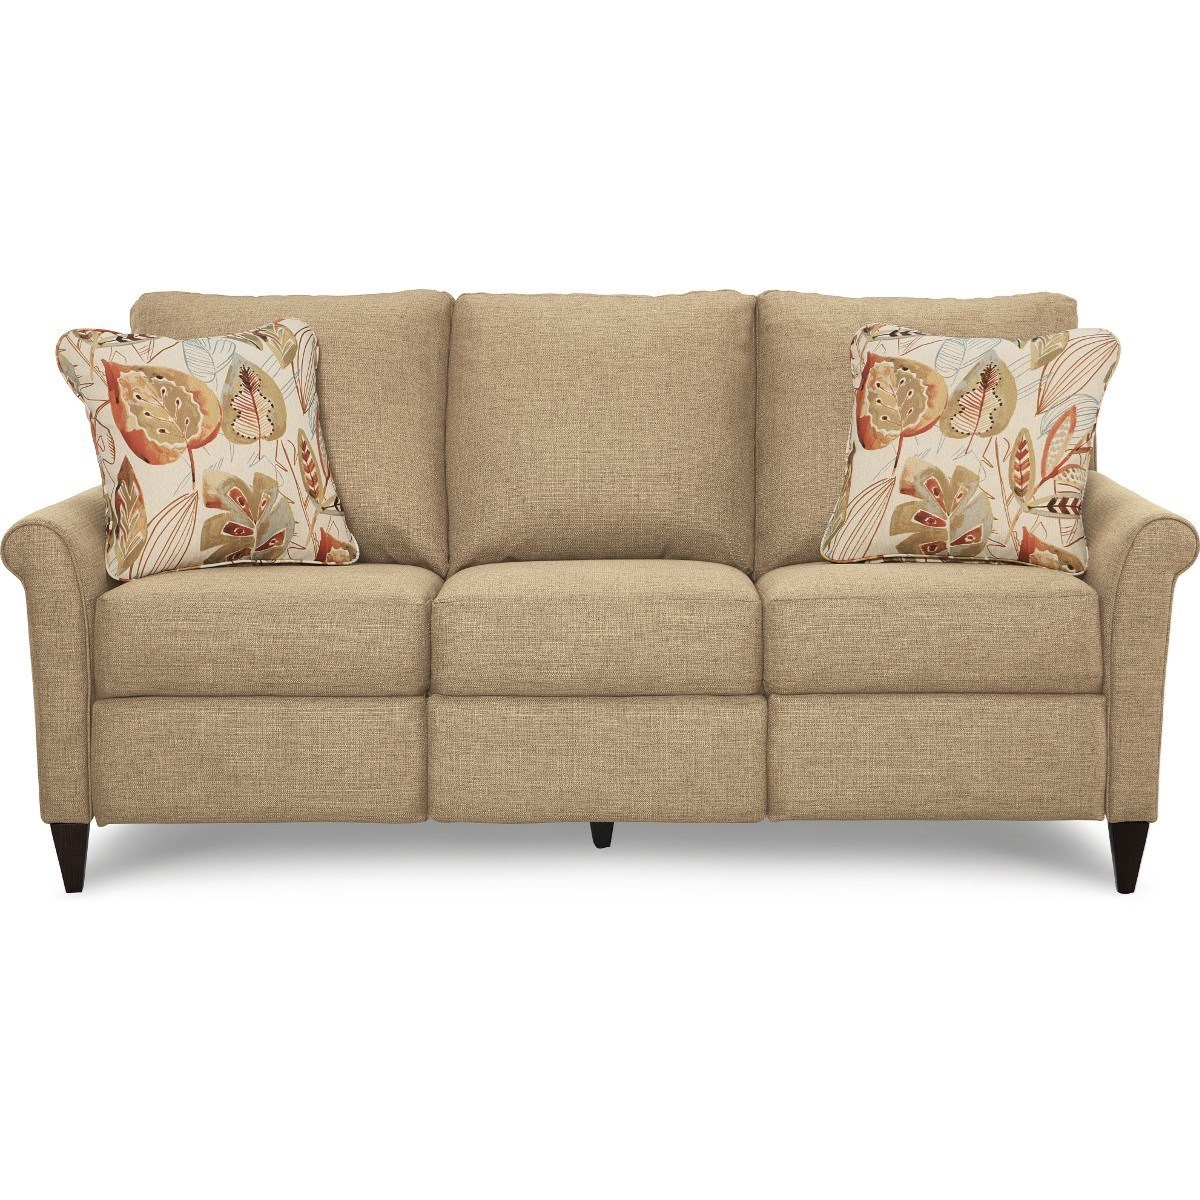 Abby Reclining Sofa by La-Z-Boy at Fisher Home Furnishings